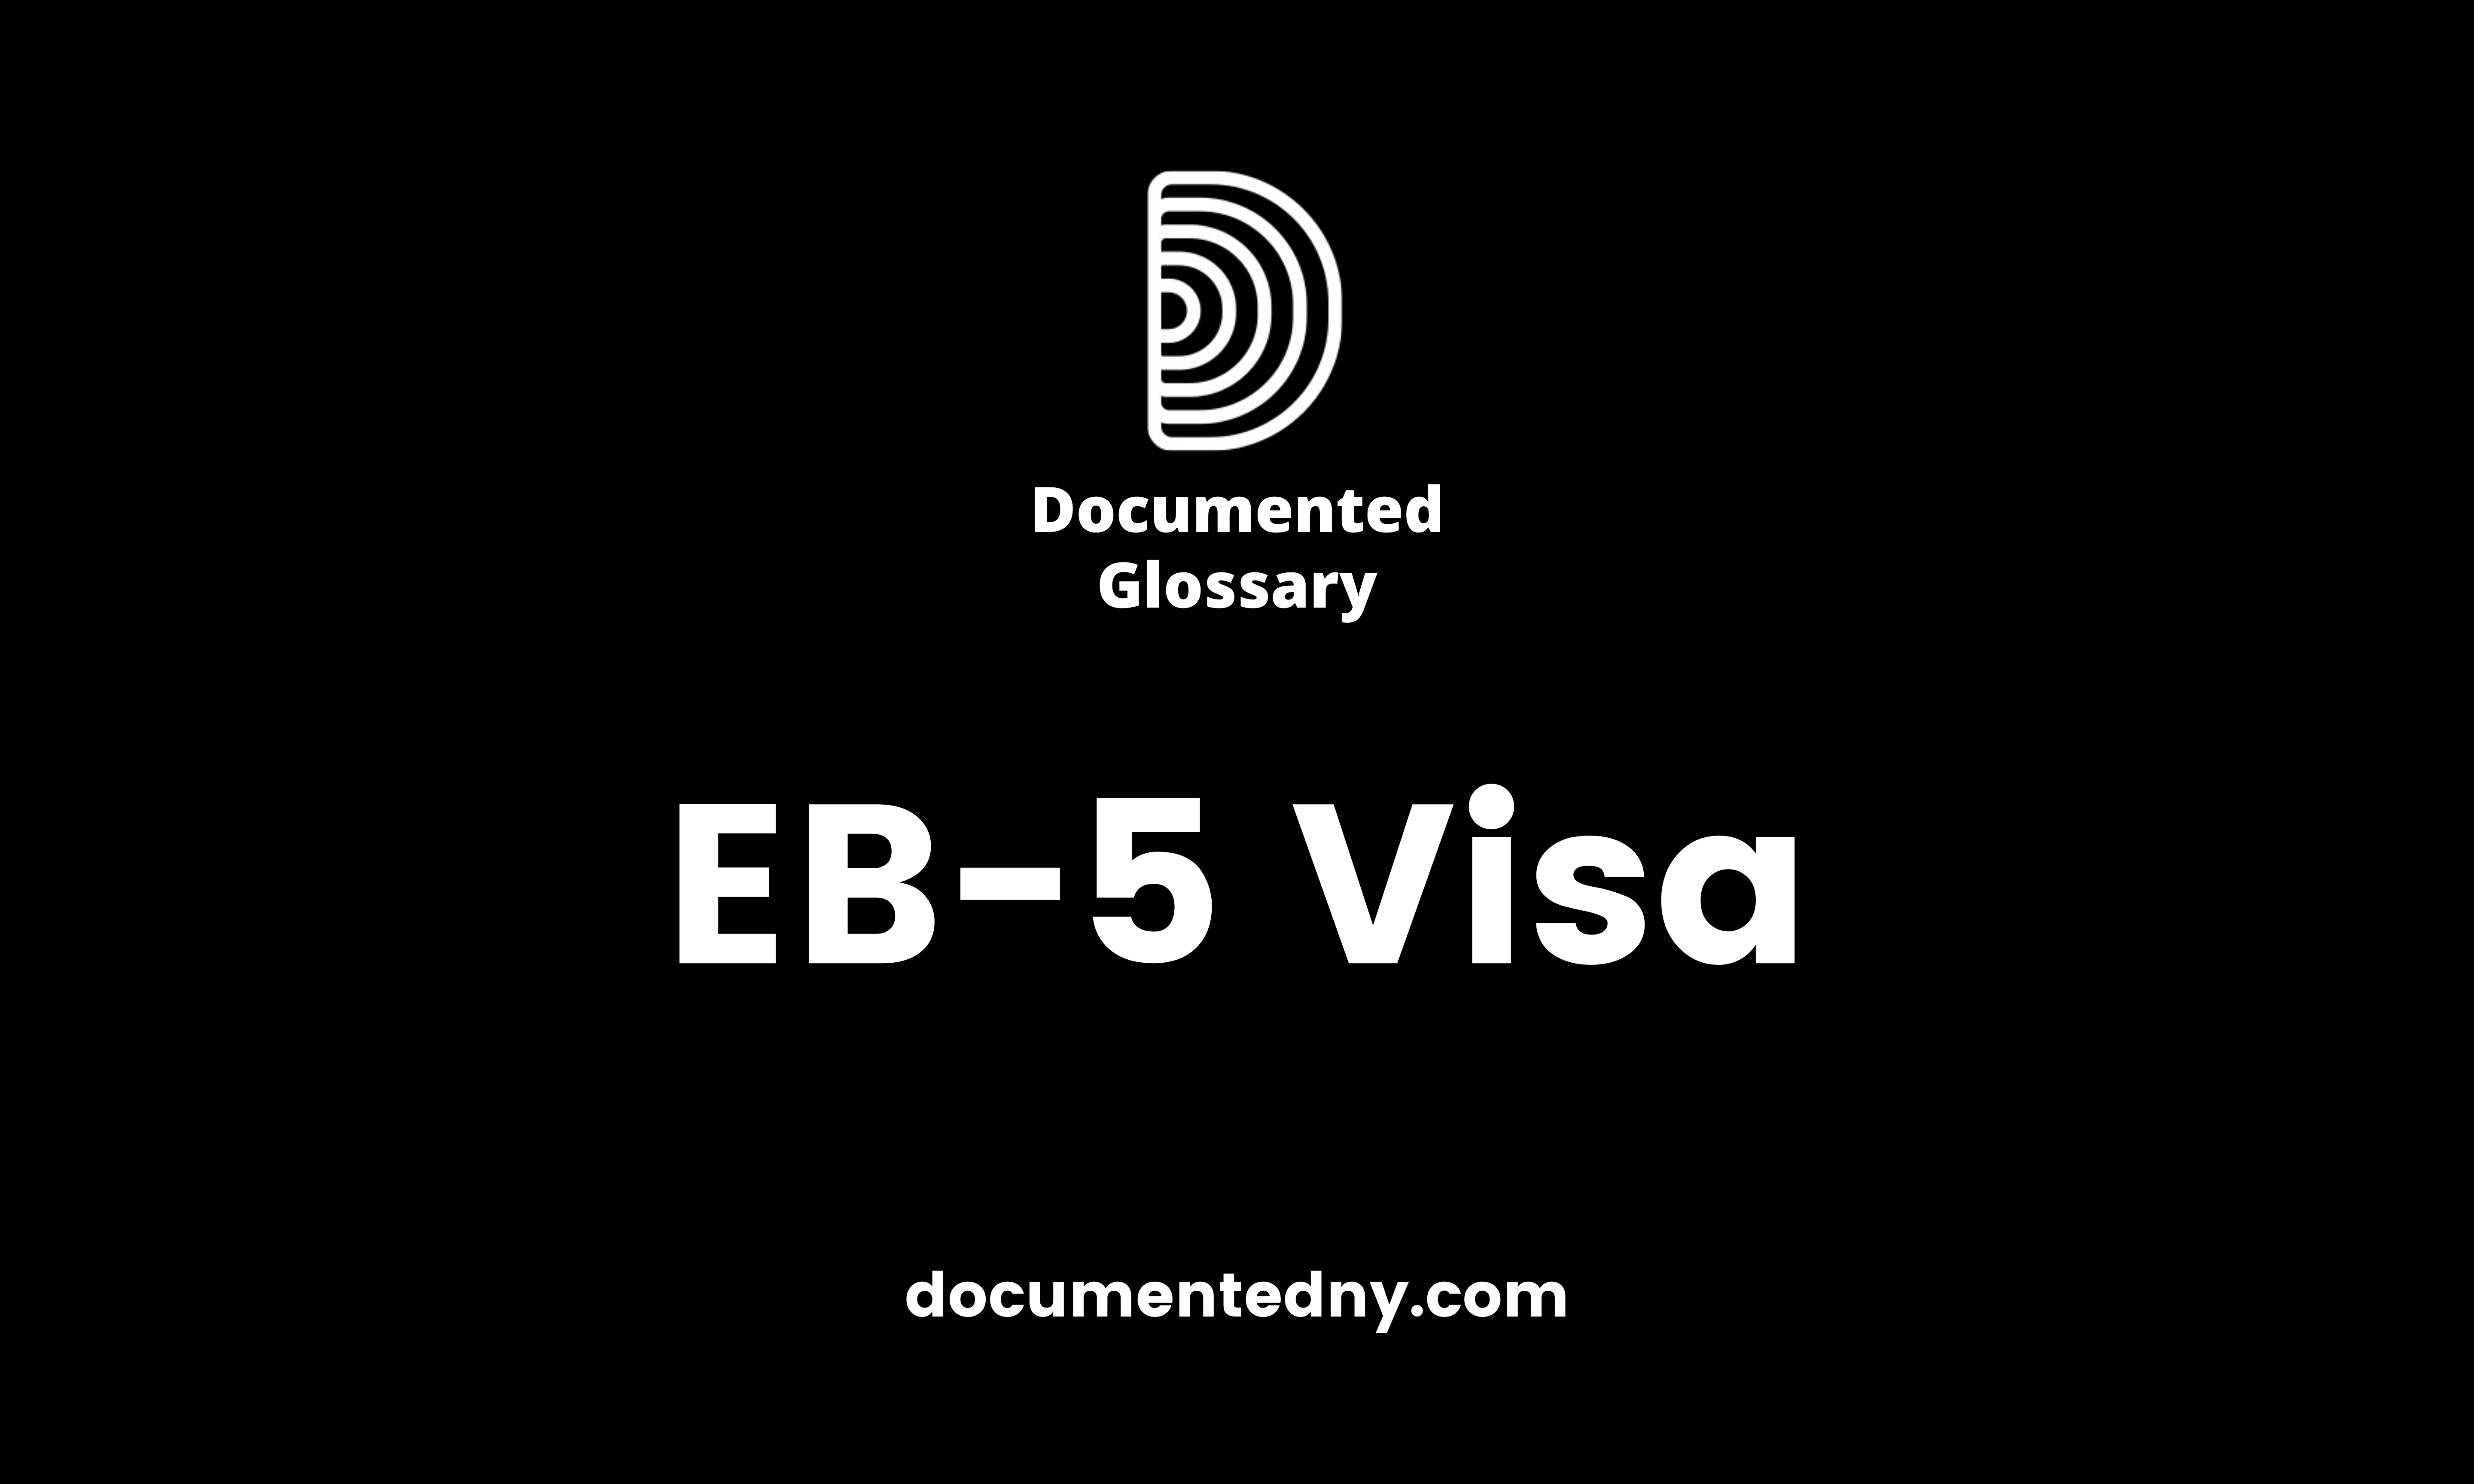 Investing the US can get you a EB-5 visa